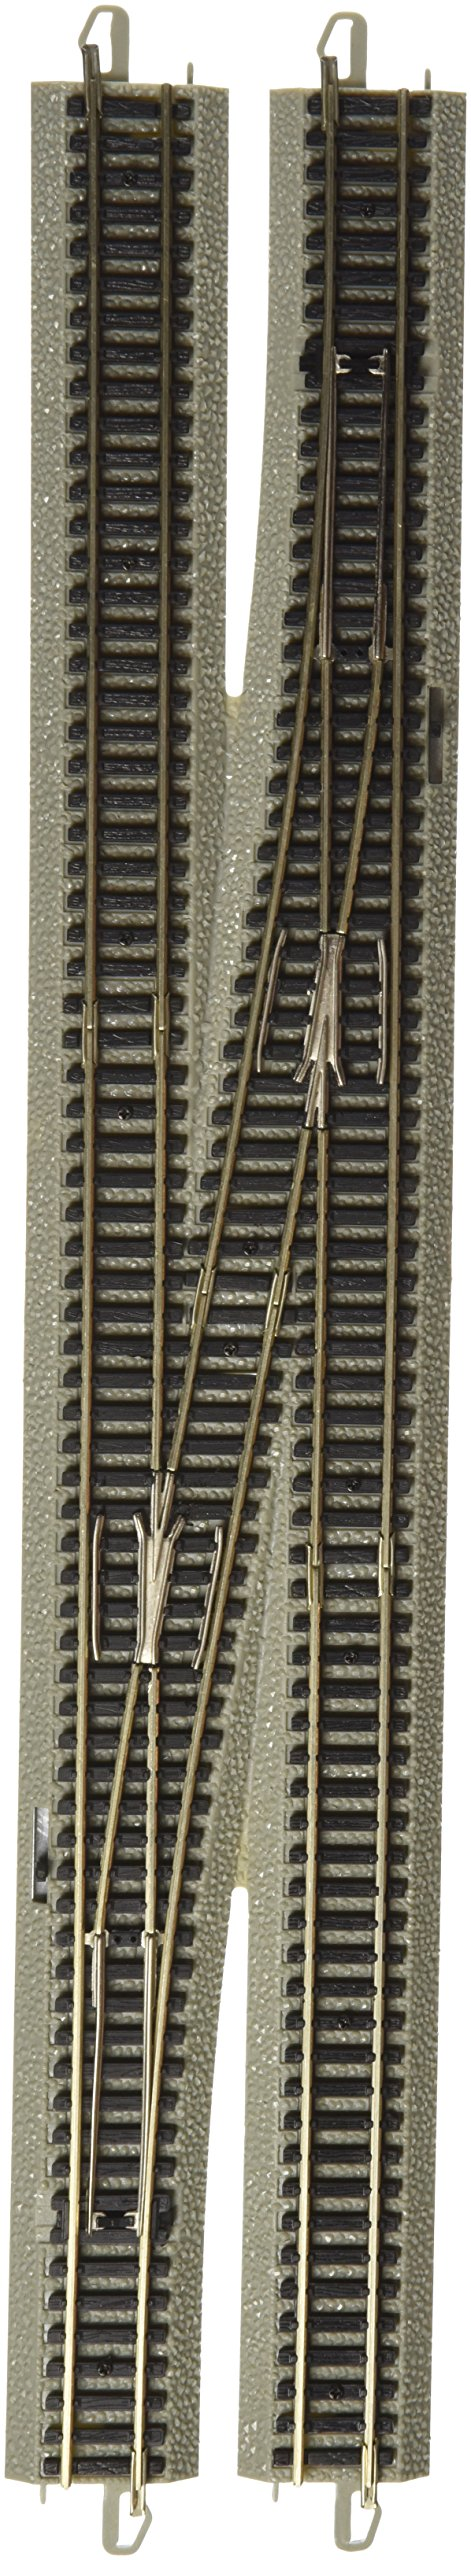 Bachmann Industries E-Z Track 6 Single Crossover Turnout - Right (1/Card) N Scale